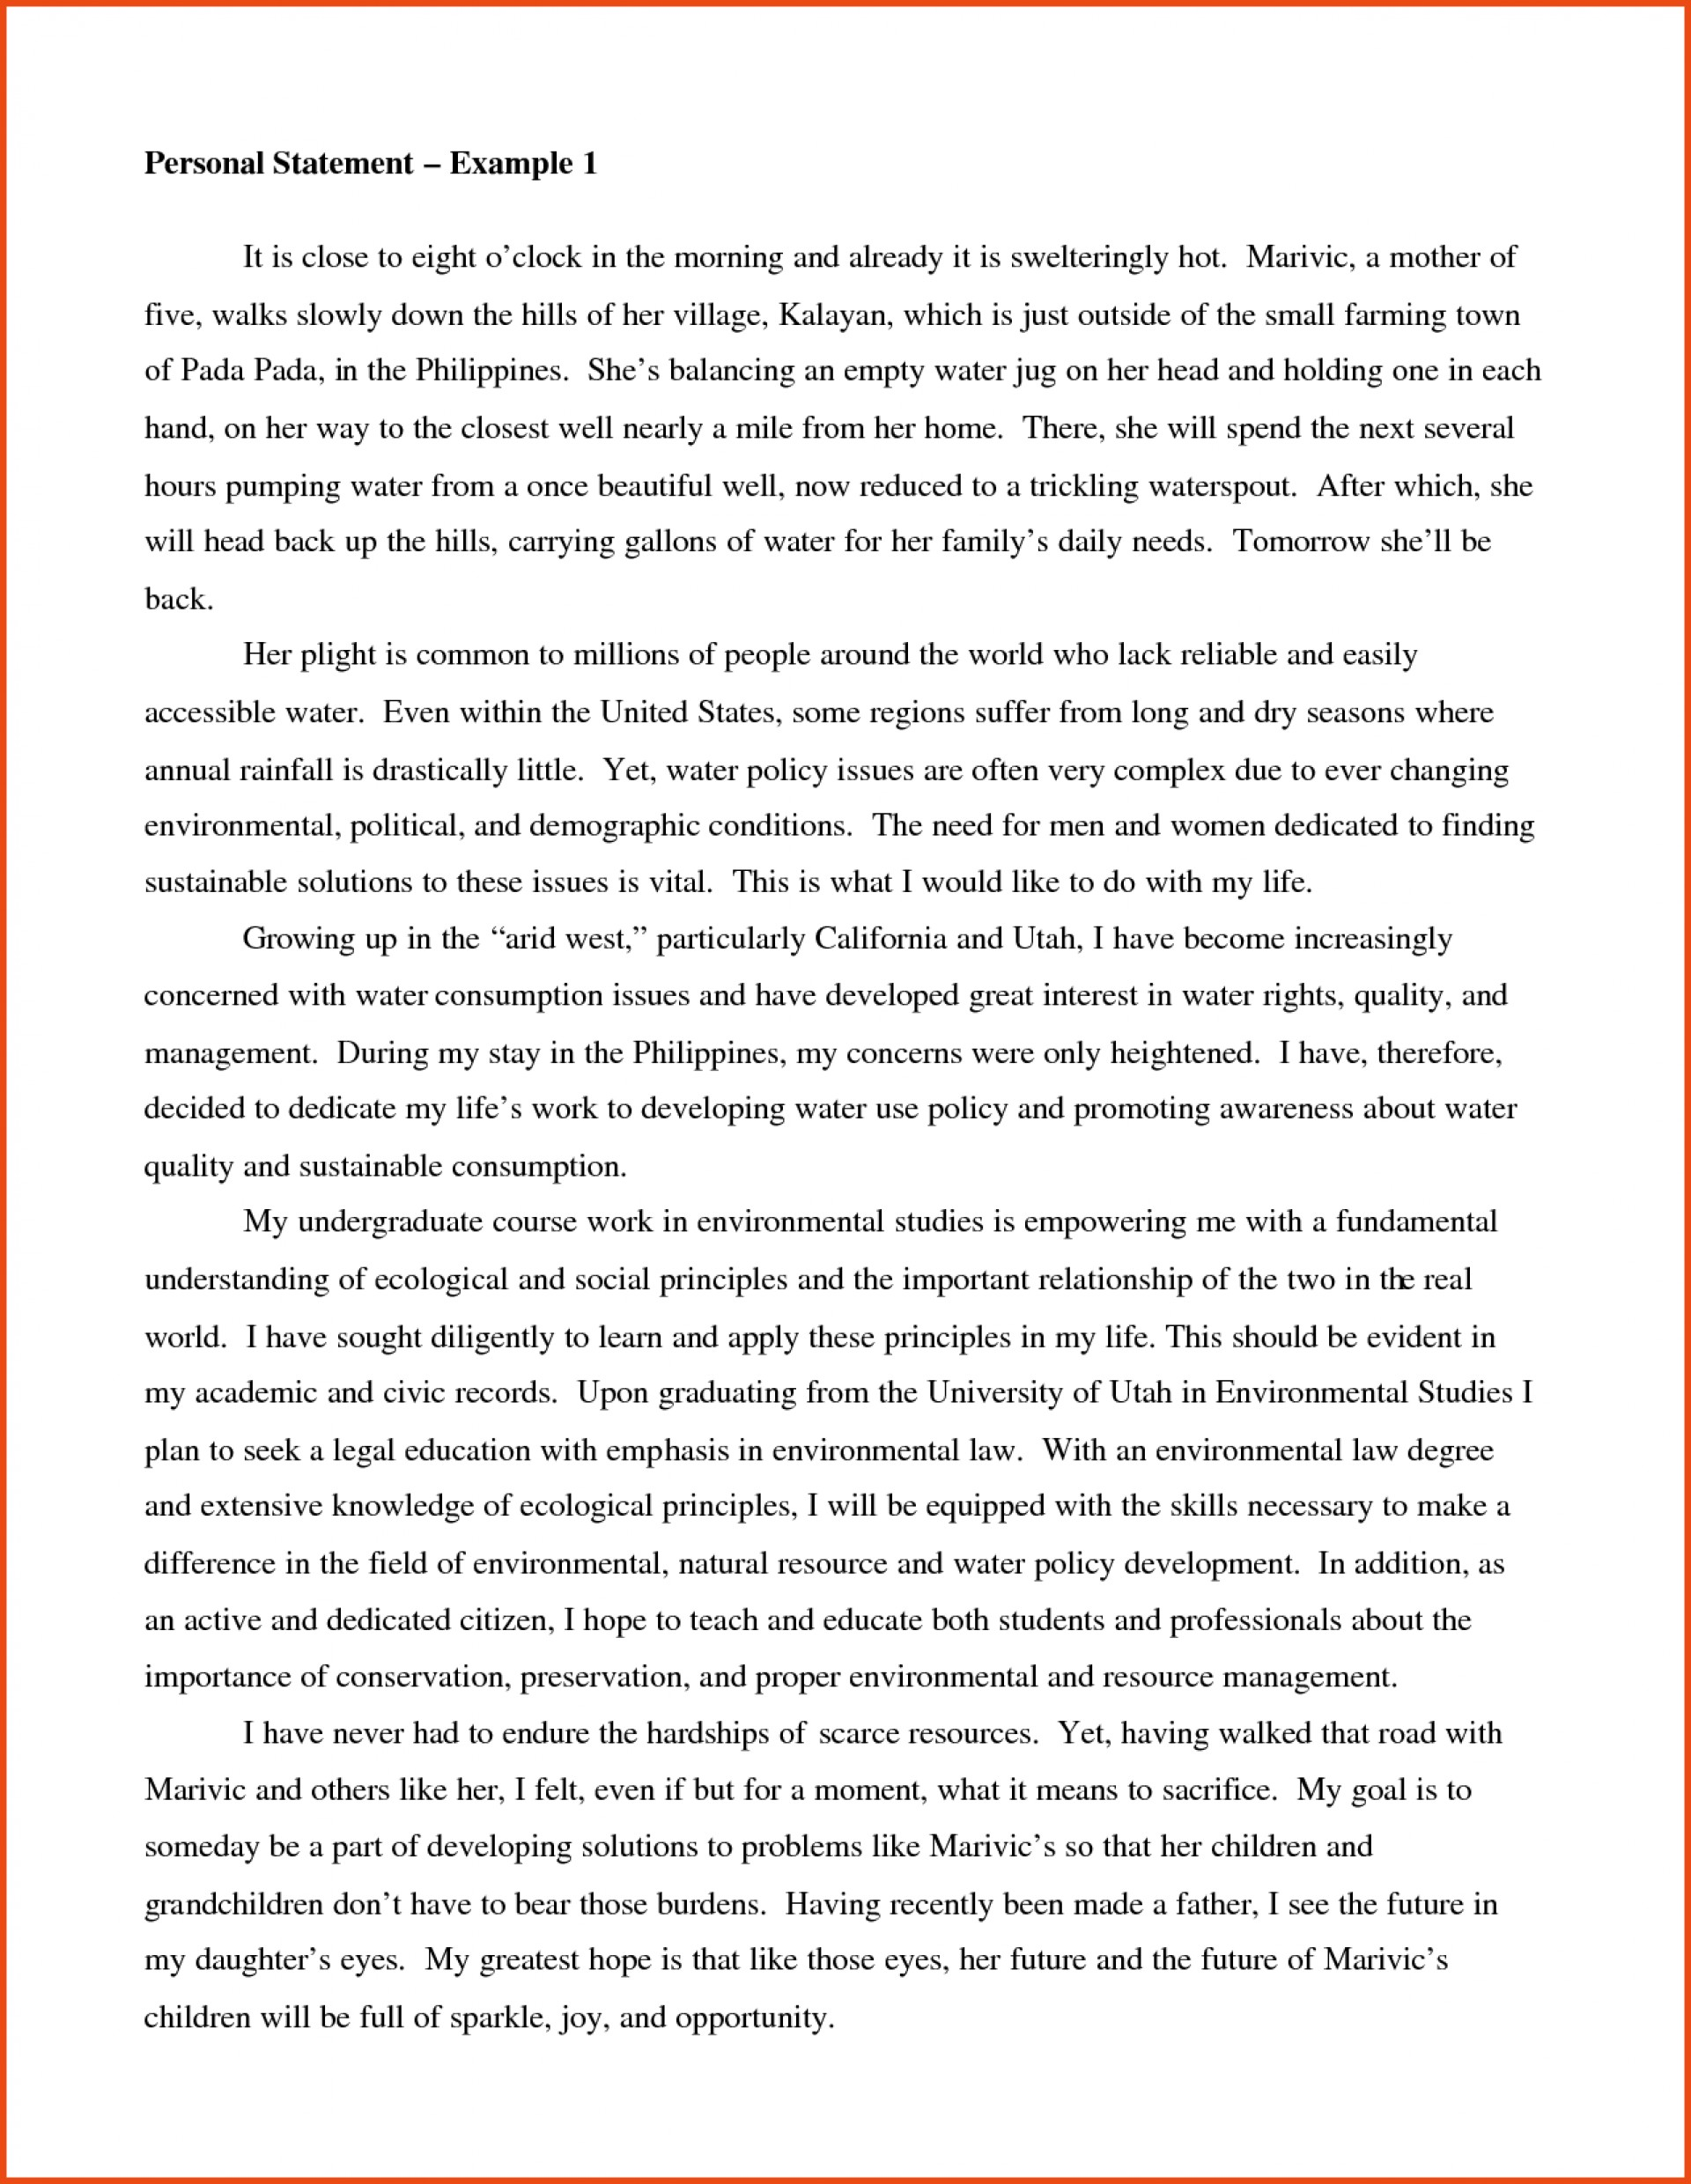 007 Essay Example Uc Essays Examples Aka Personal Insight Questions Prompt Statement Gre Writing For 5th Grade Middle School College 4th High Frightening Prompts Tips 1920